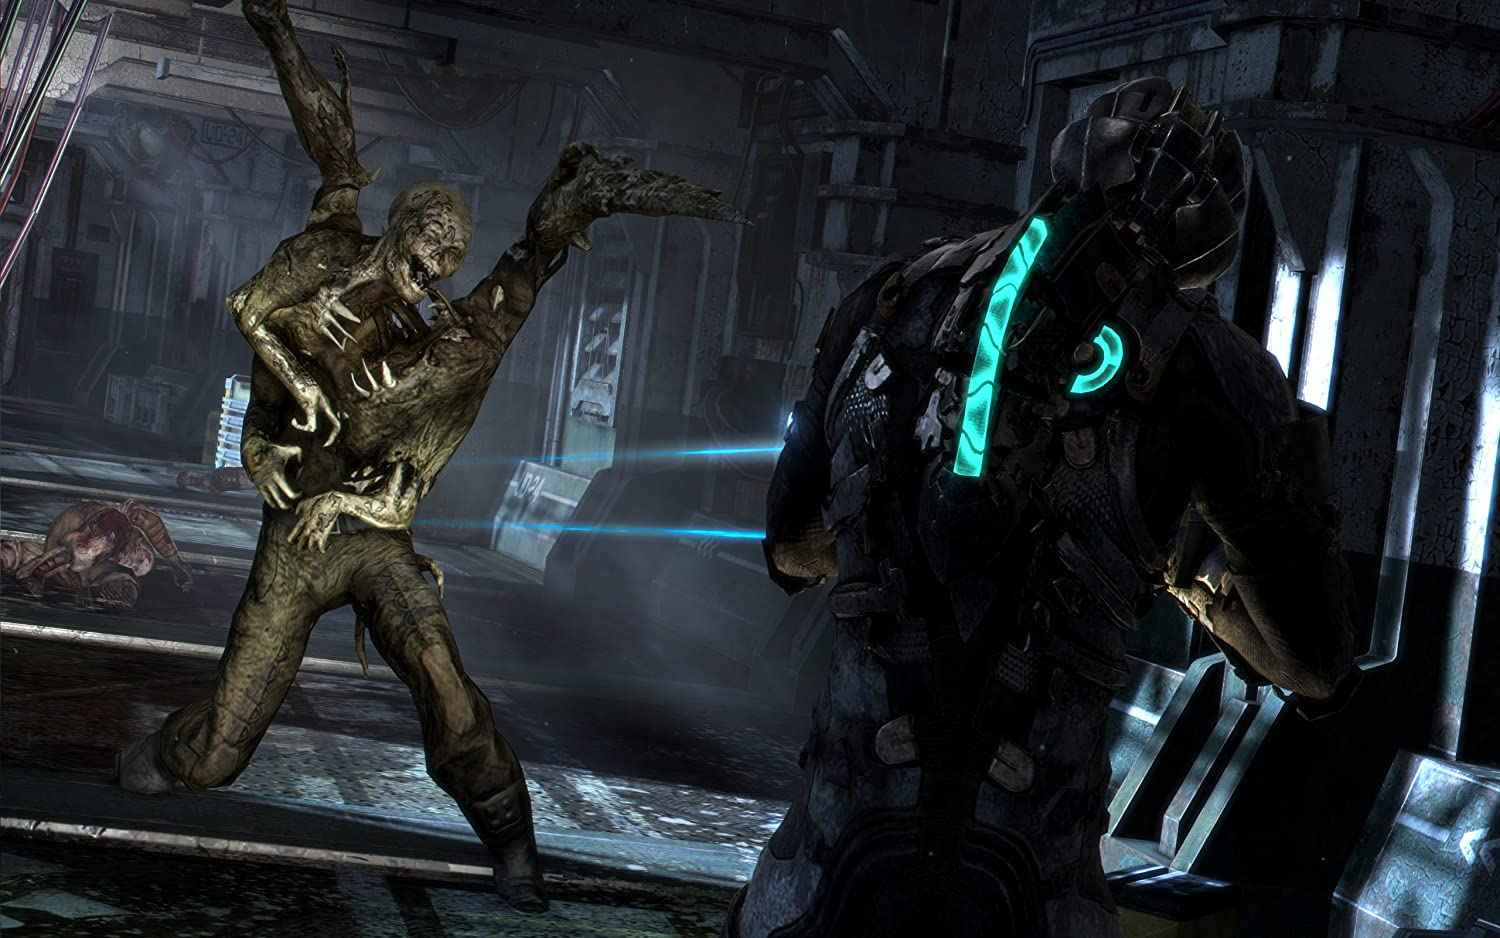 amazon com dead space 3 limited edition pc video games rh amazon com Dead Space PC Controls Dead Space 3 PC Cover